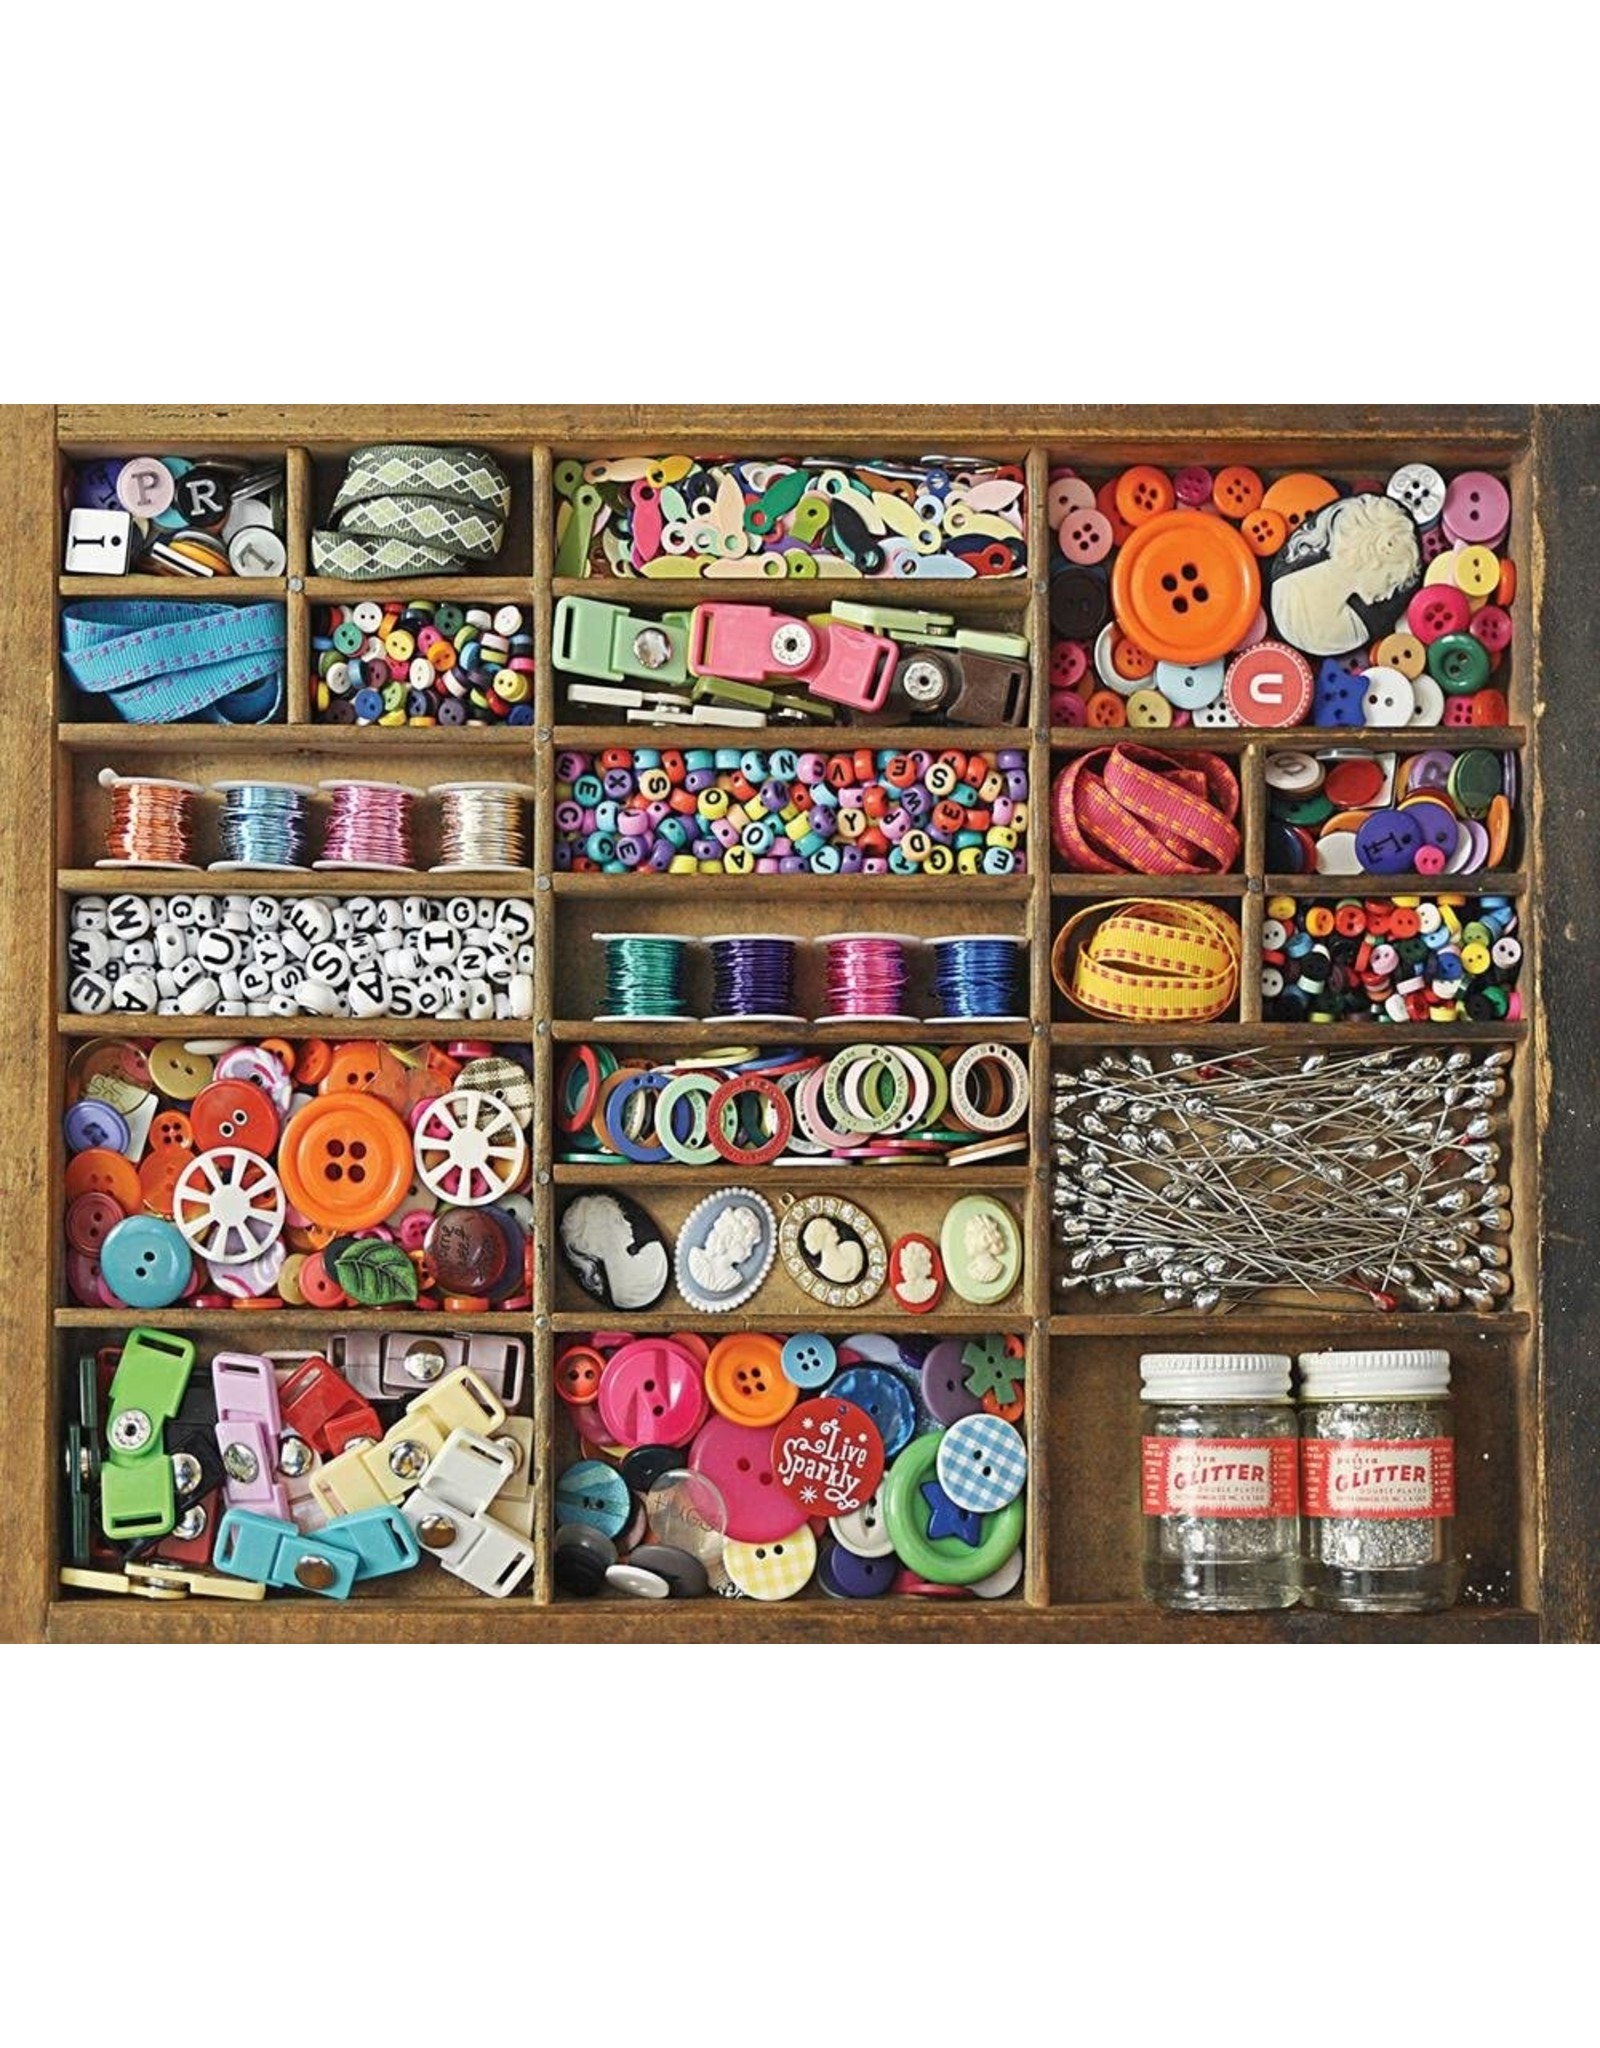 Puzzle: The Sewing Box 500pcs